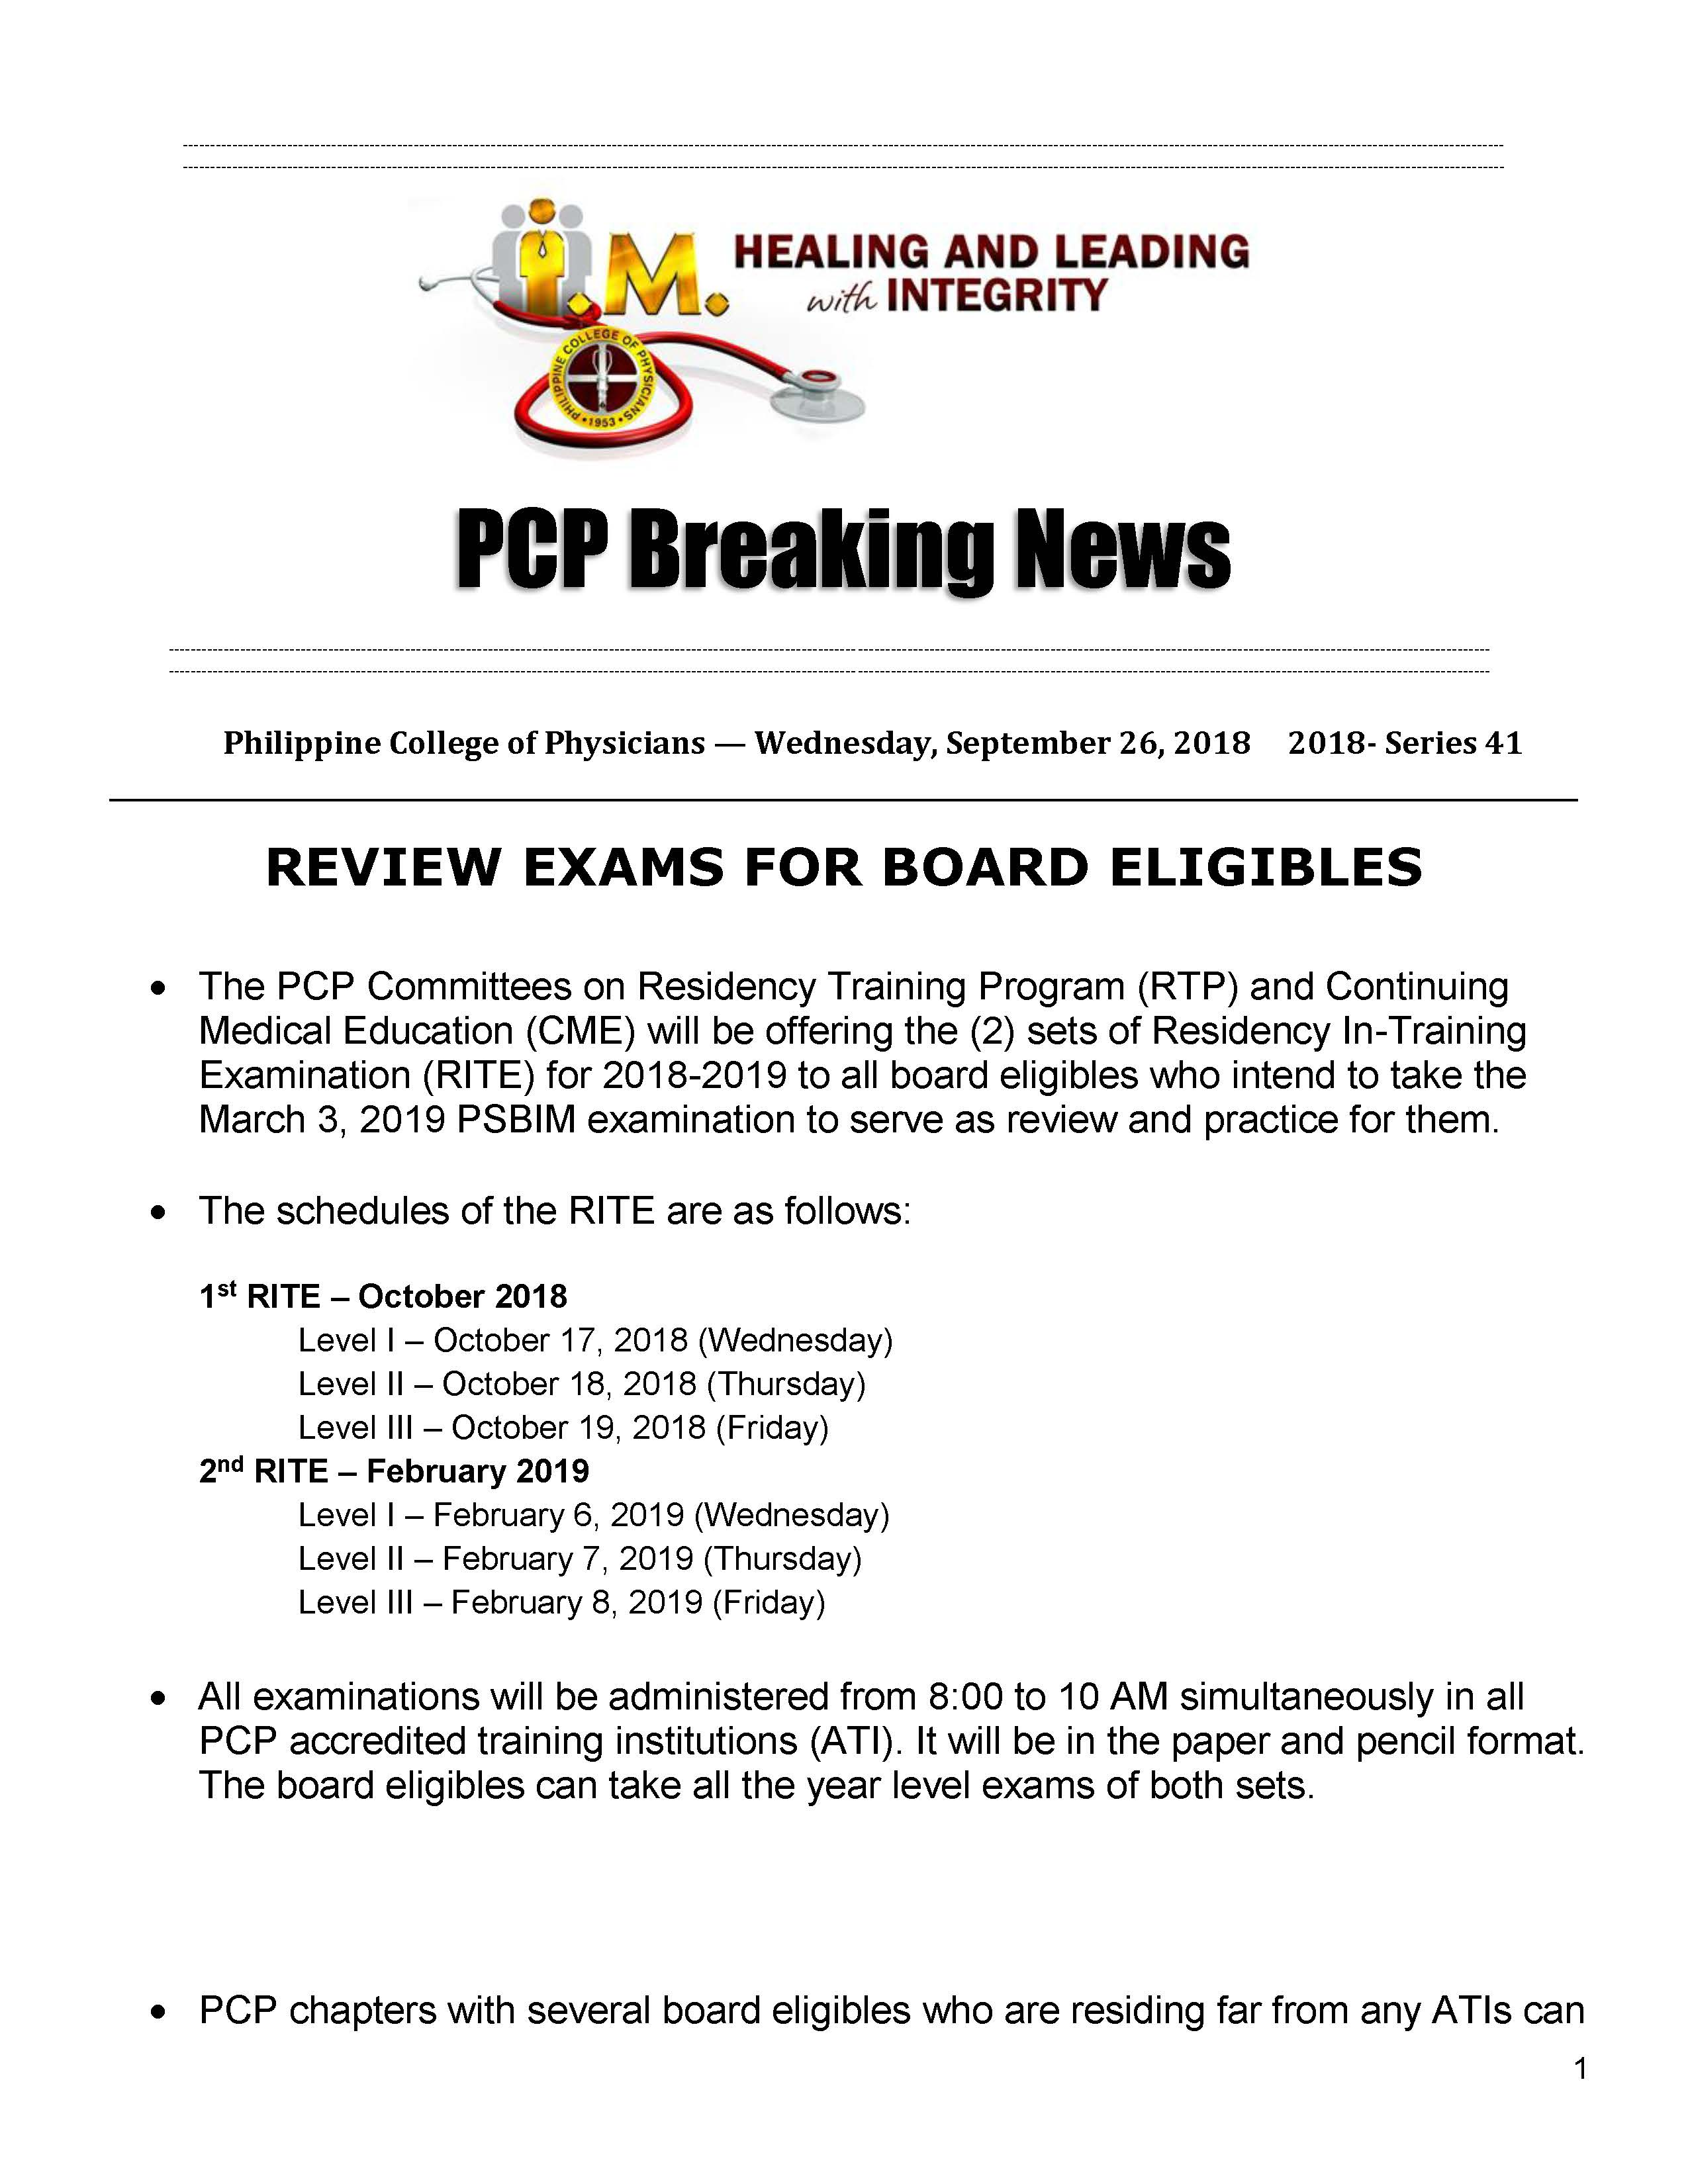 PCP Breaking News for Board Eligibles Page 1